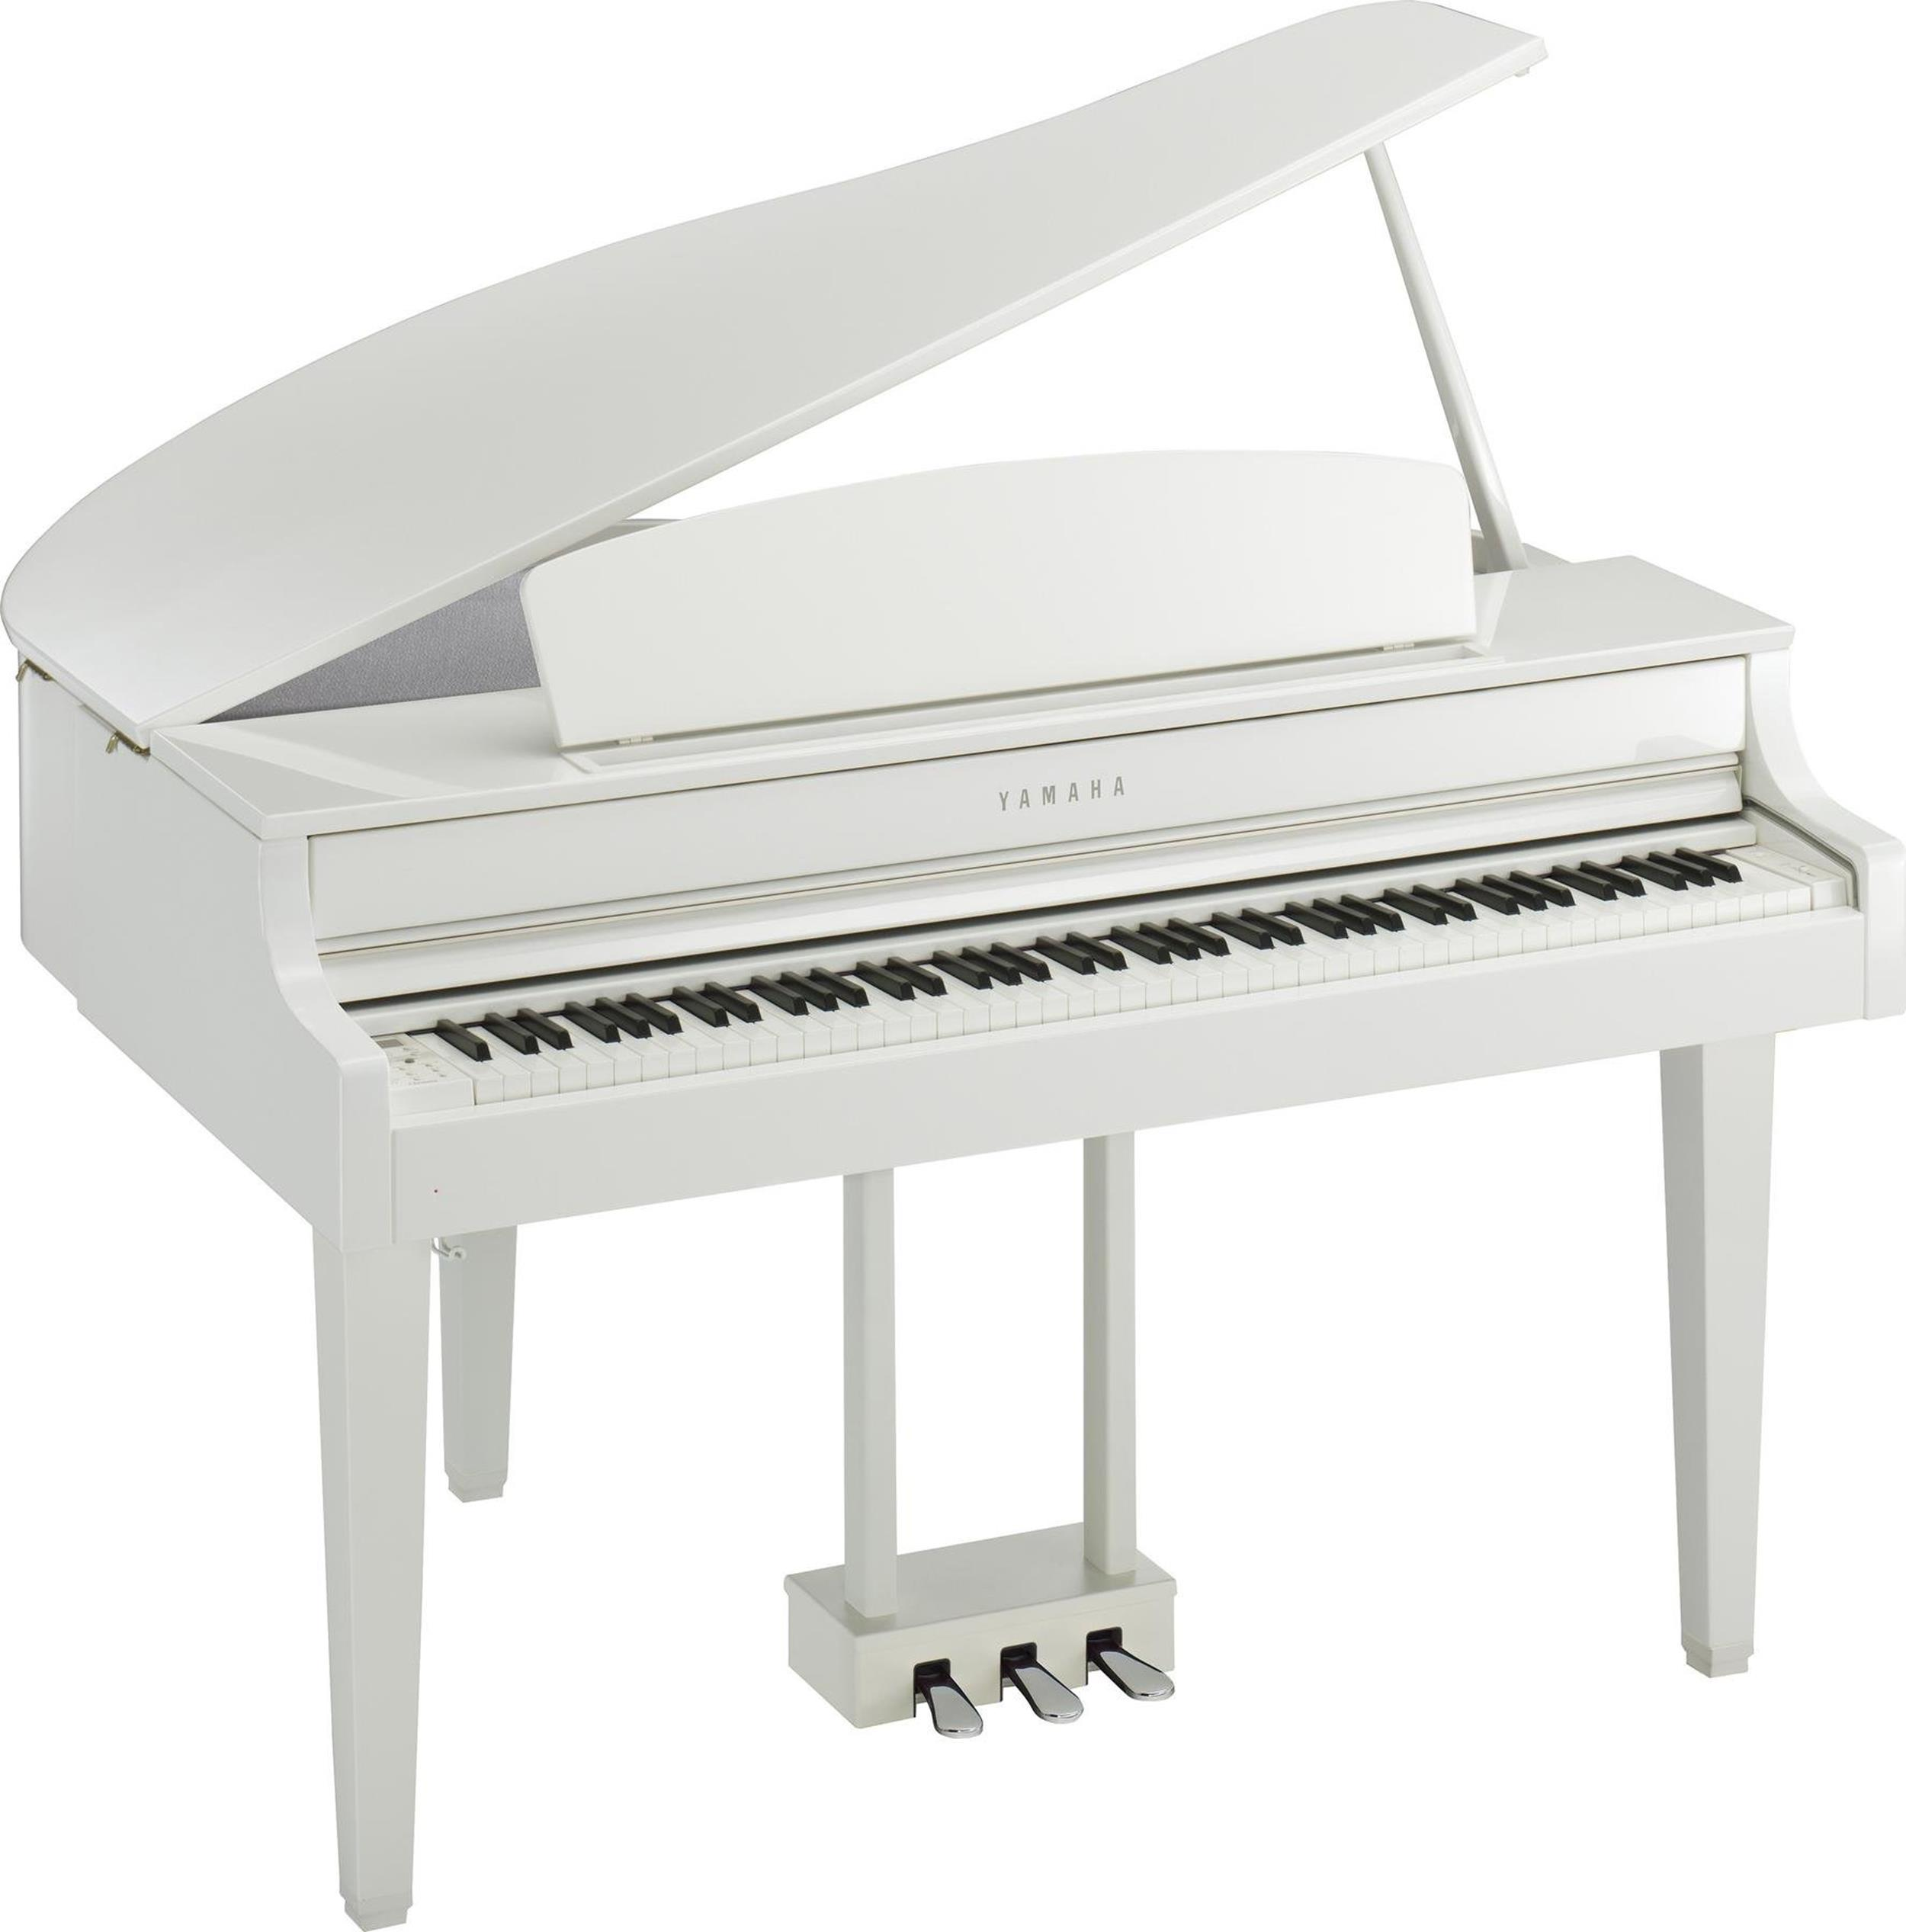 YAMAHA CLP665GPWH - CLAVINOVA - DIGITAL PIANO POLISHED WHITE